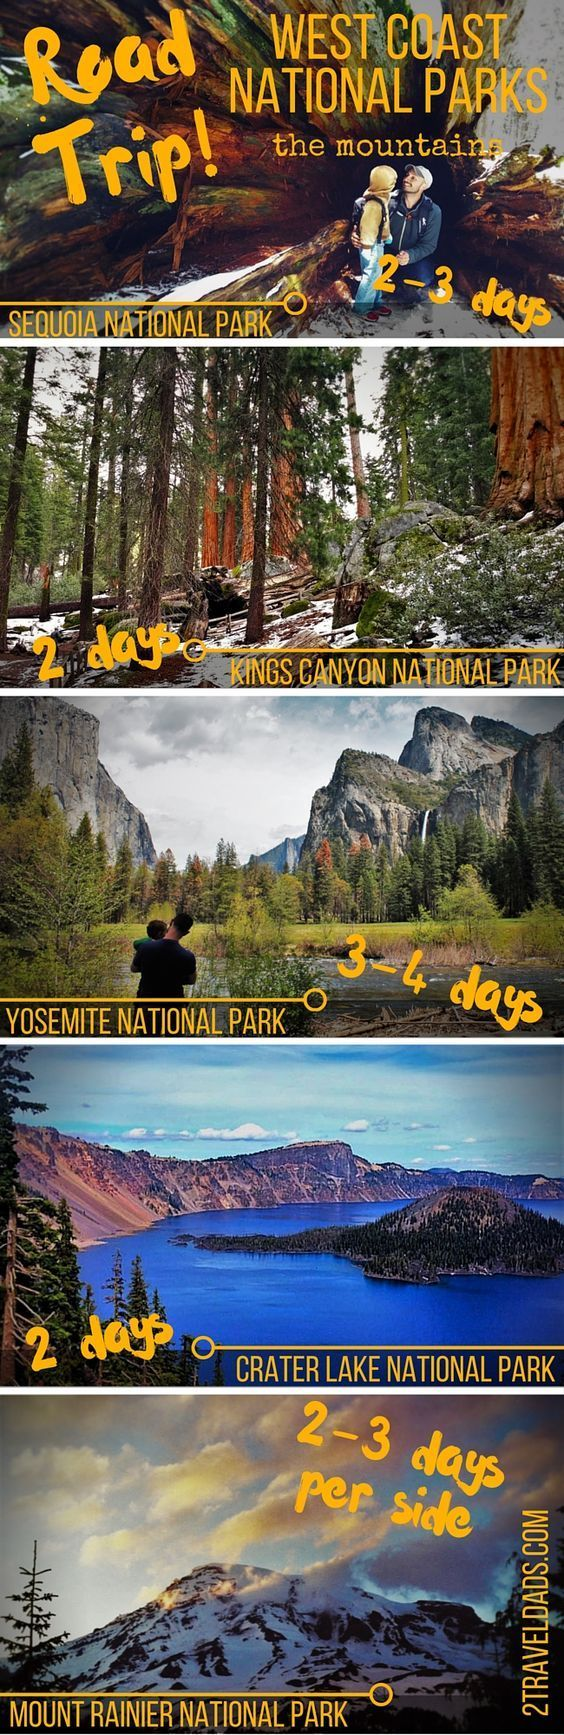 An ideal plan for a West Coast National Park road trip, visiting the various mountain National Parks including Yosemite, Sequoia/Kings Canyon, Mt Rainier... 2traveldads.com